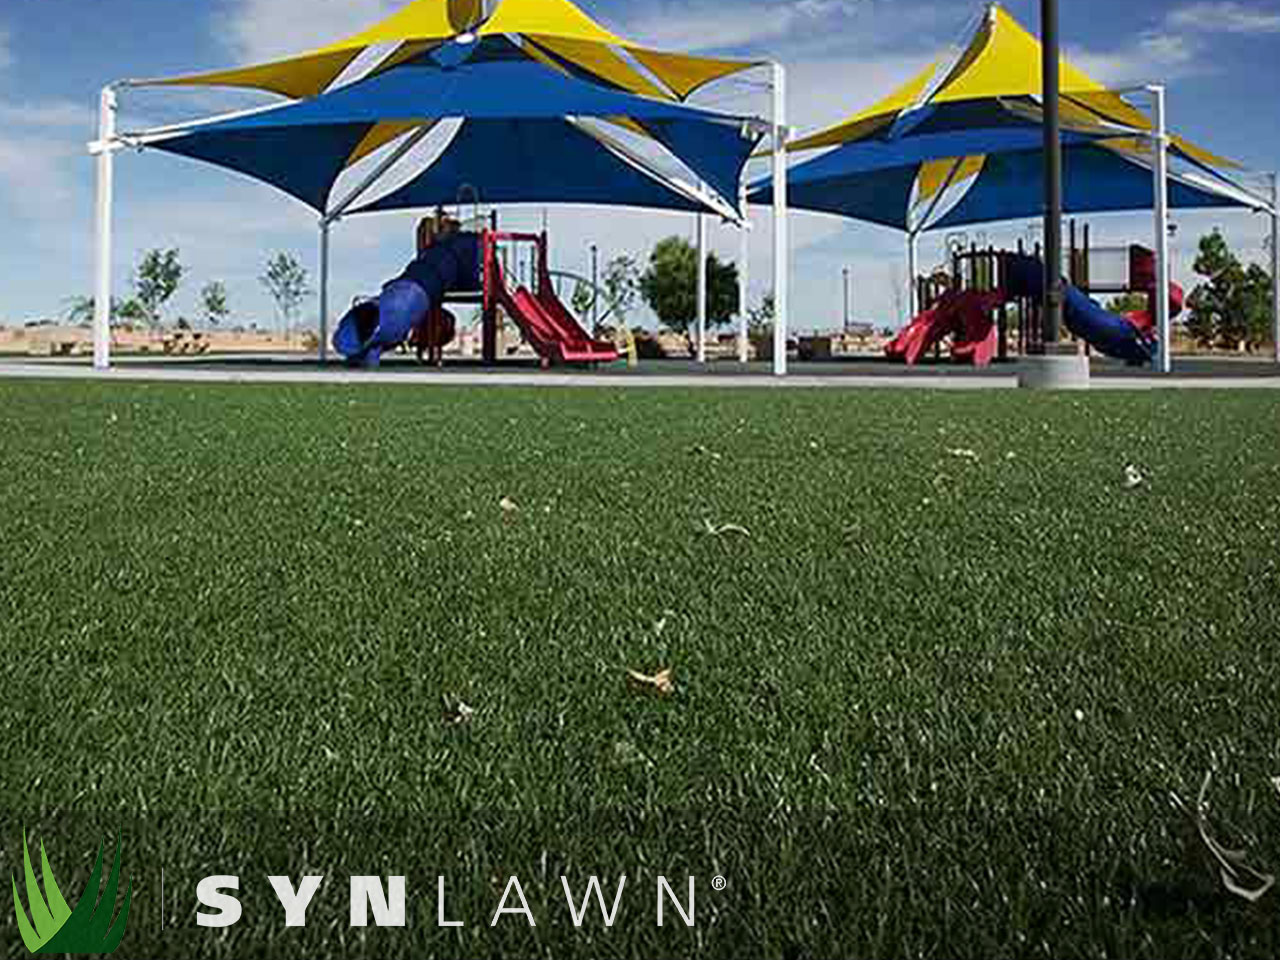 SYNLawn Playground Photo 35